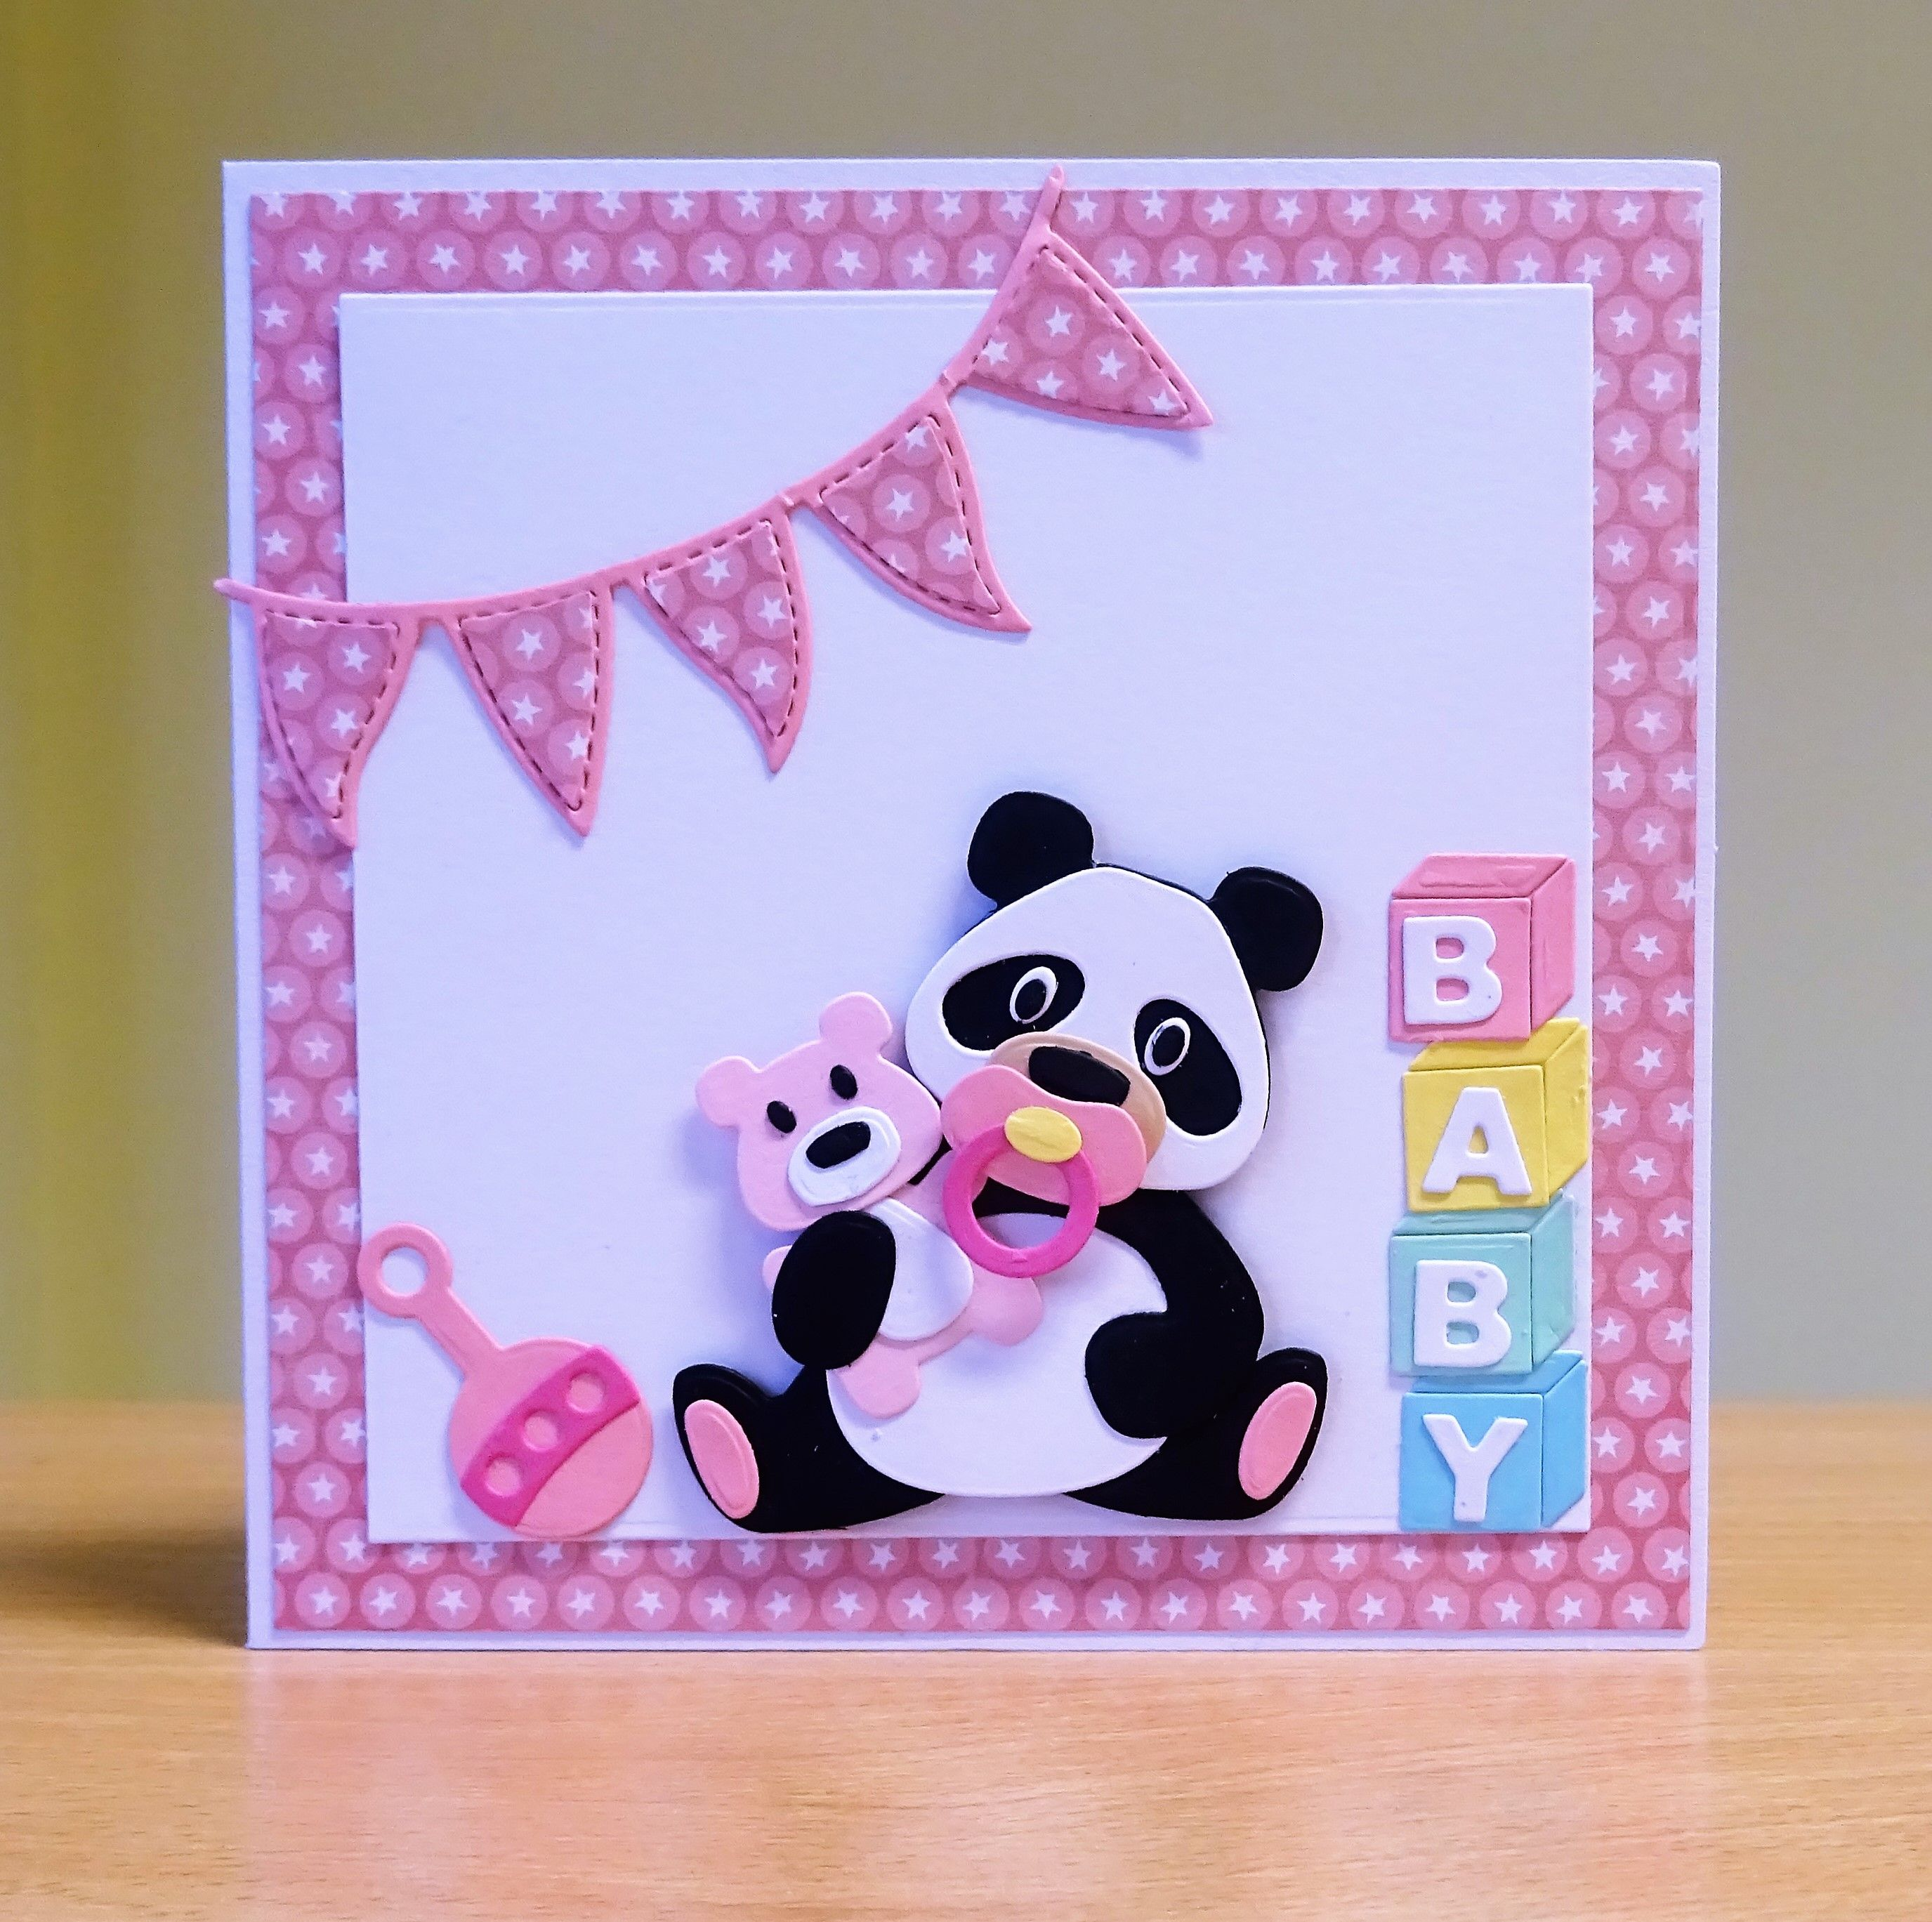 New baby girl card marianne collectables panda die baby new baby girl card marianne collectables panda die baby accessories die to purchase kristyandbryce Gallery